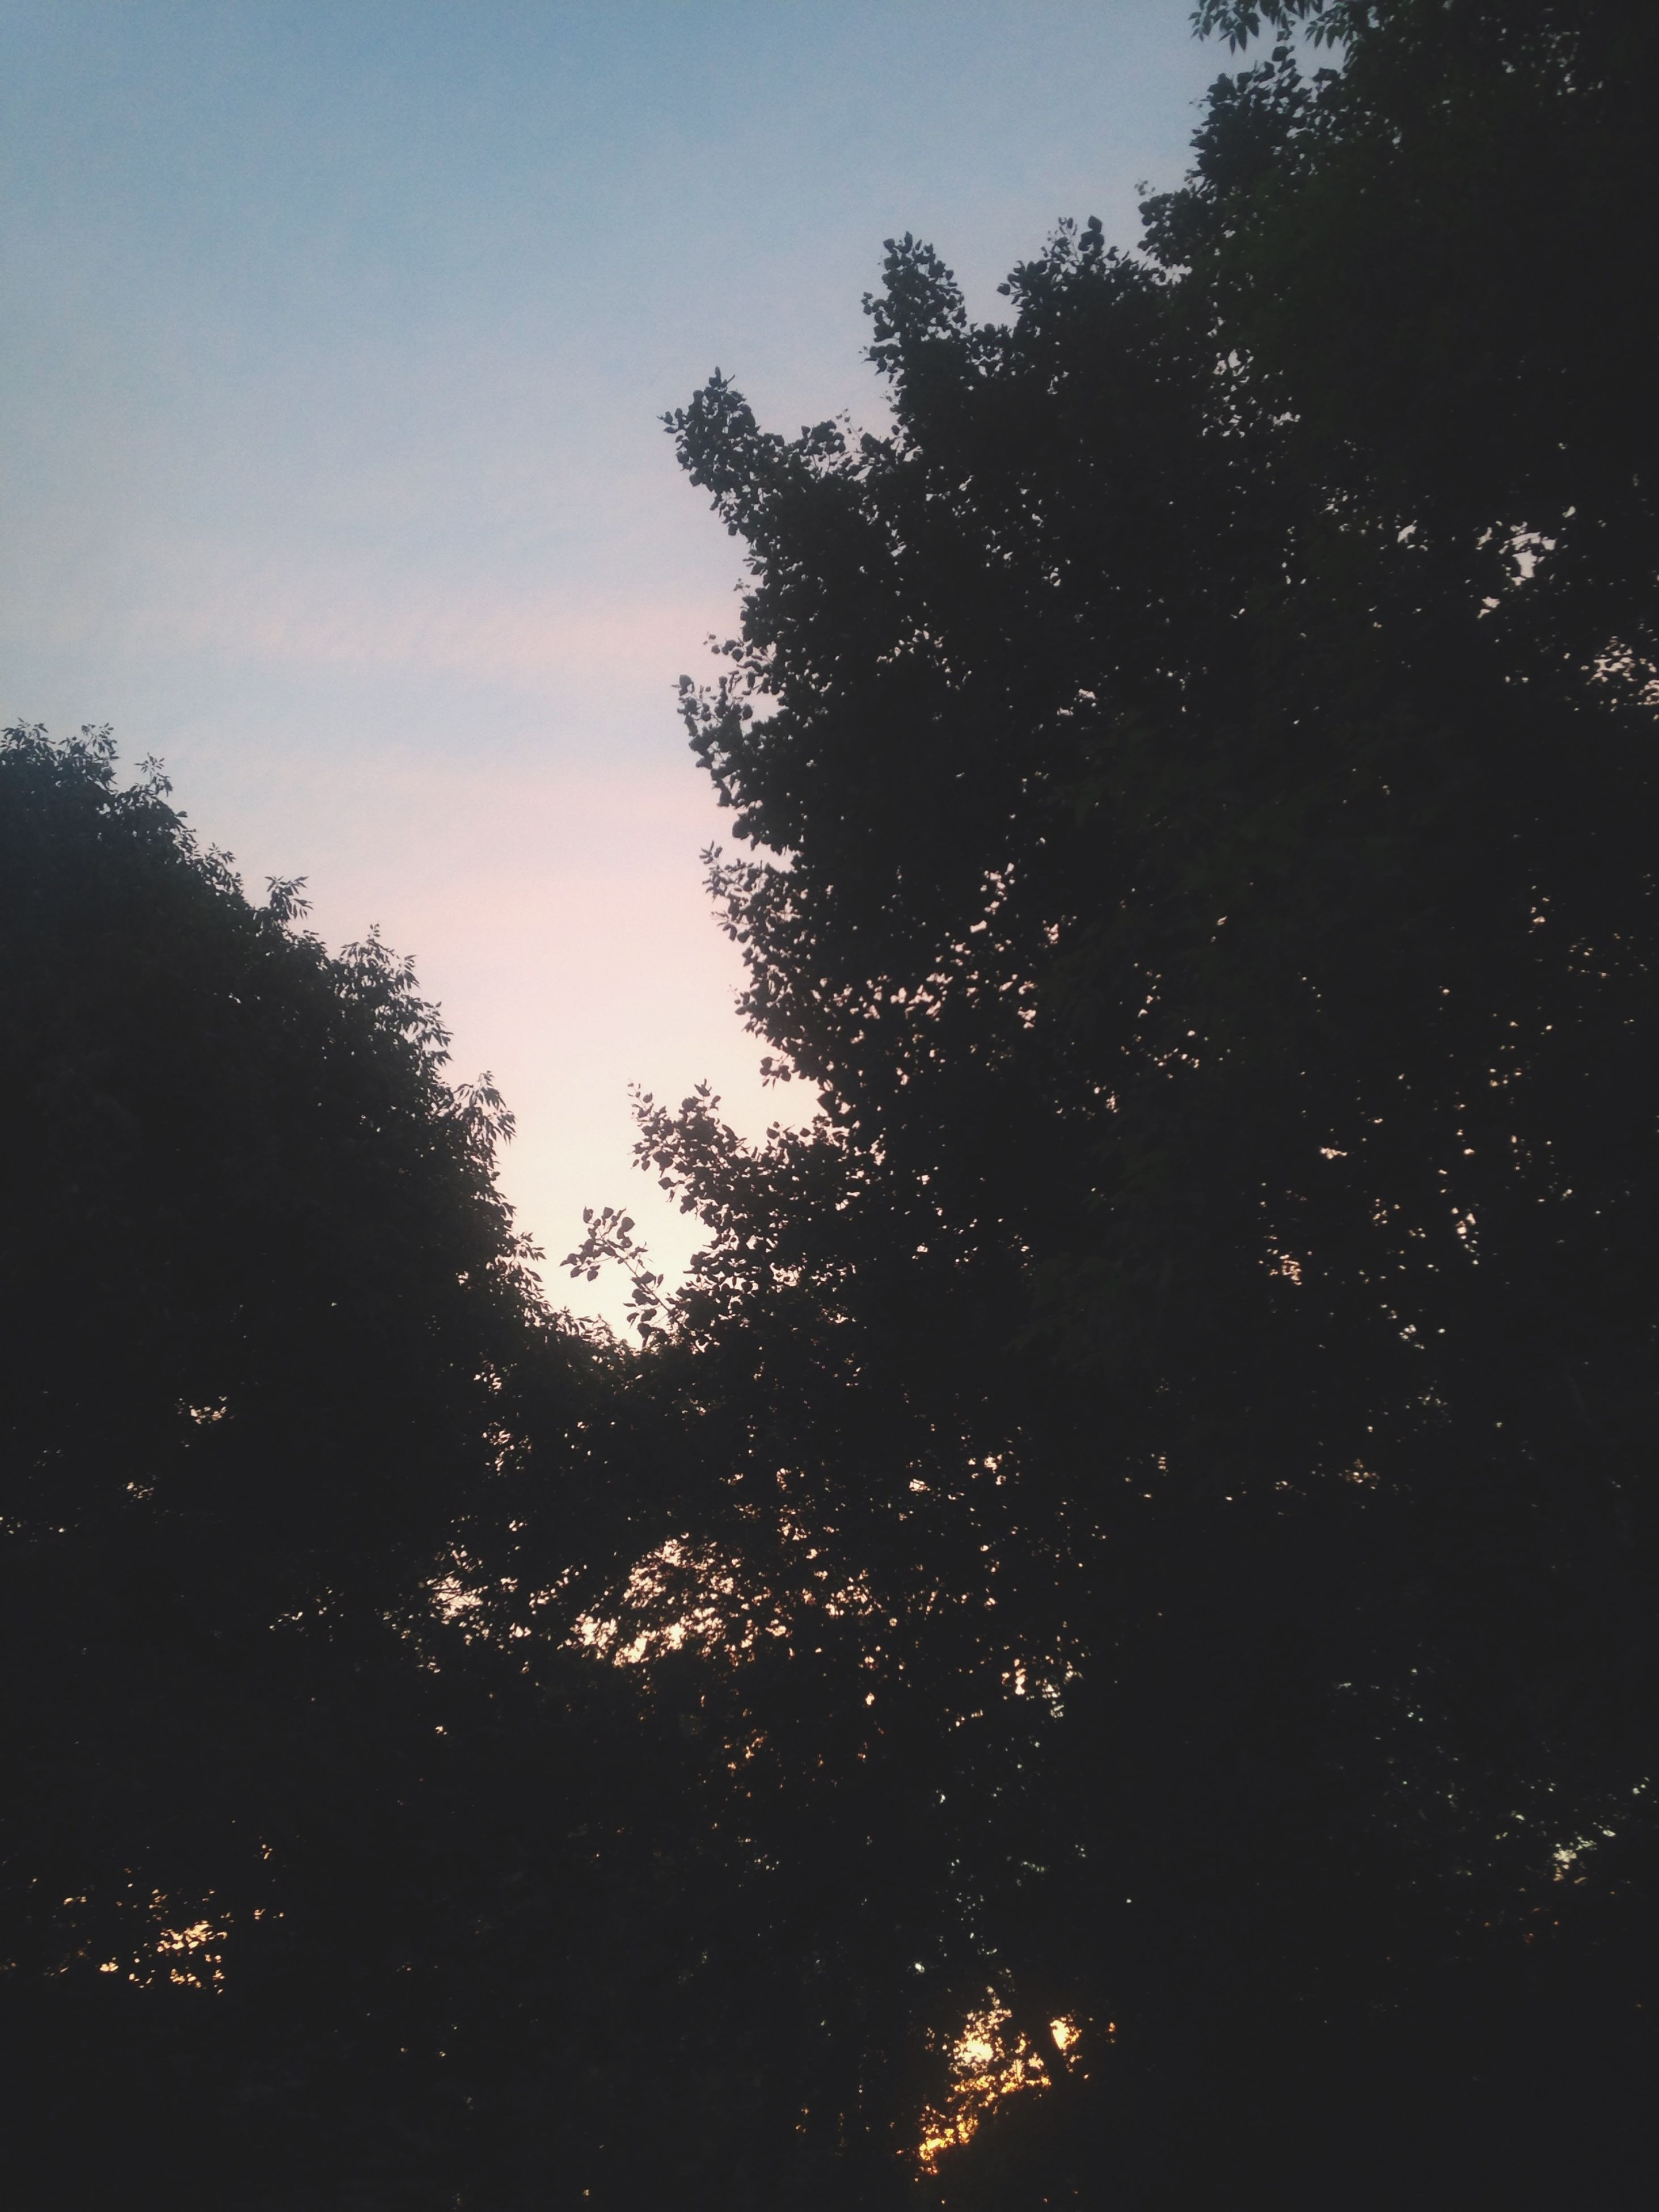 tree, silhouette, tranquility, sky, low angle view, growth, beauty in nature, tranquil scene, nature, scenics, branch, sunset, outdoors, idyllic, dusk, no people, forest, sunlight, non-urban scene, dark